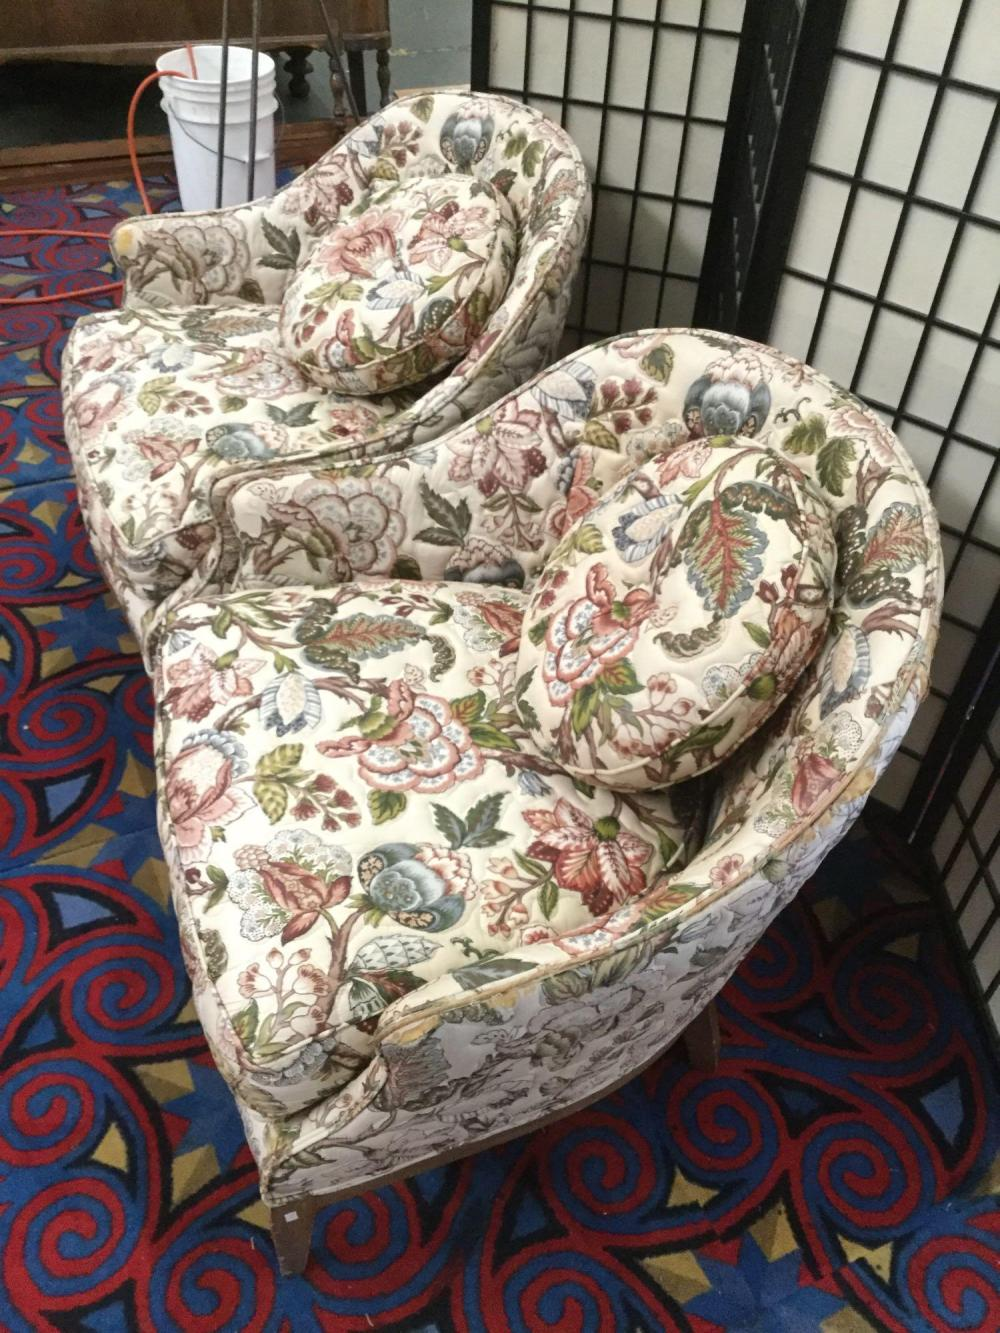 Lot 139: Vintage Tomlinson chairs that have been custom upholstered by T&M in Tacoma, WI